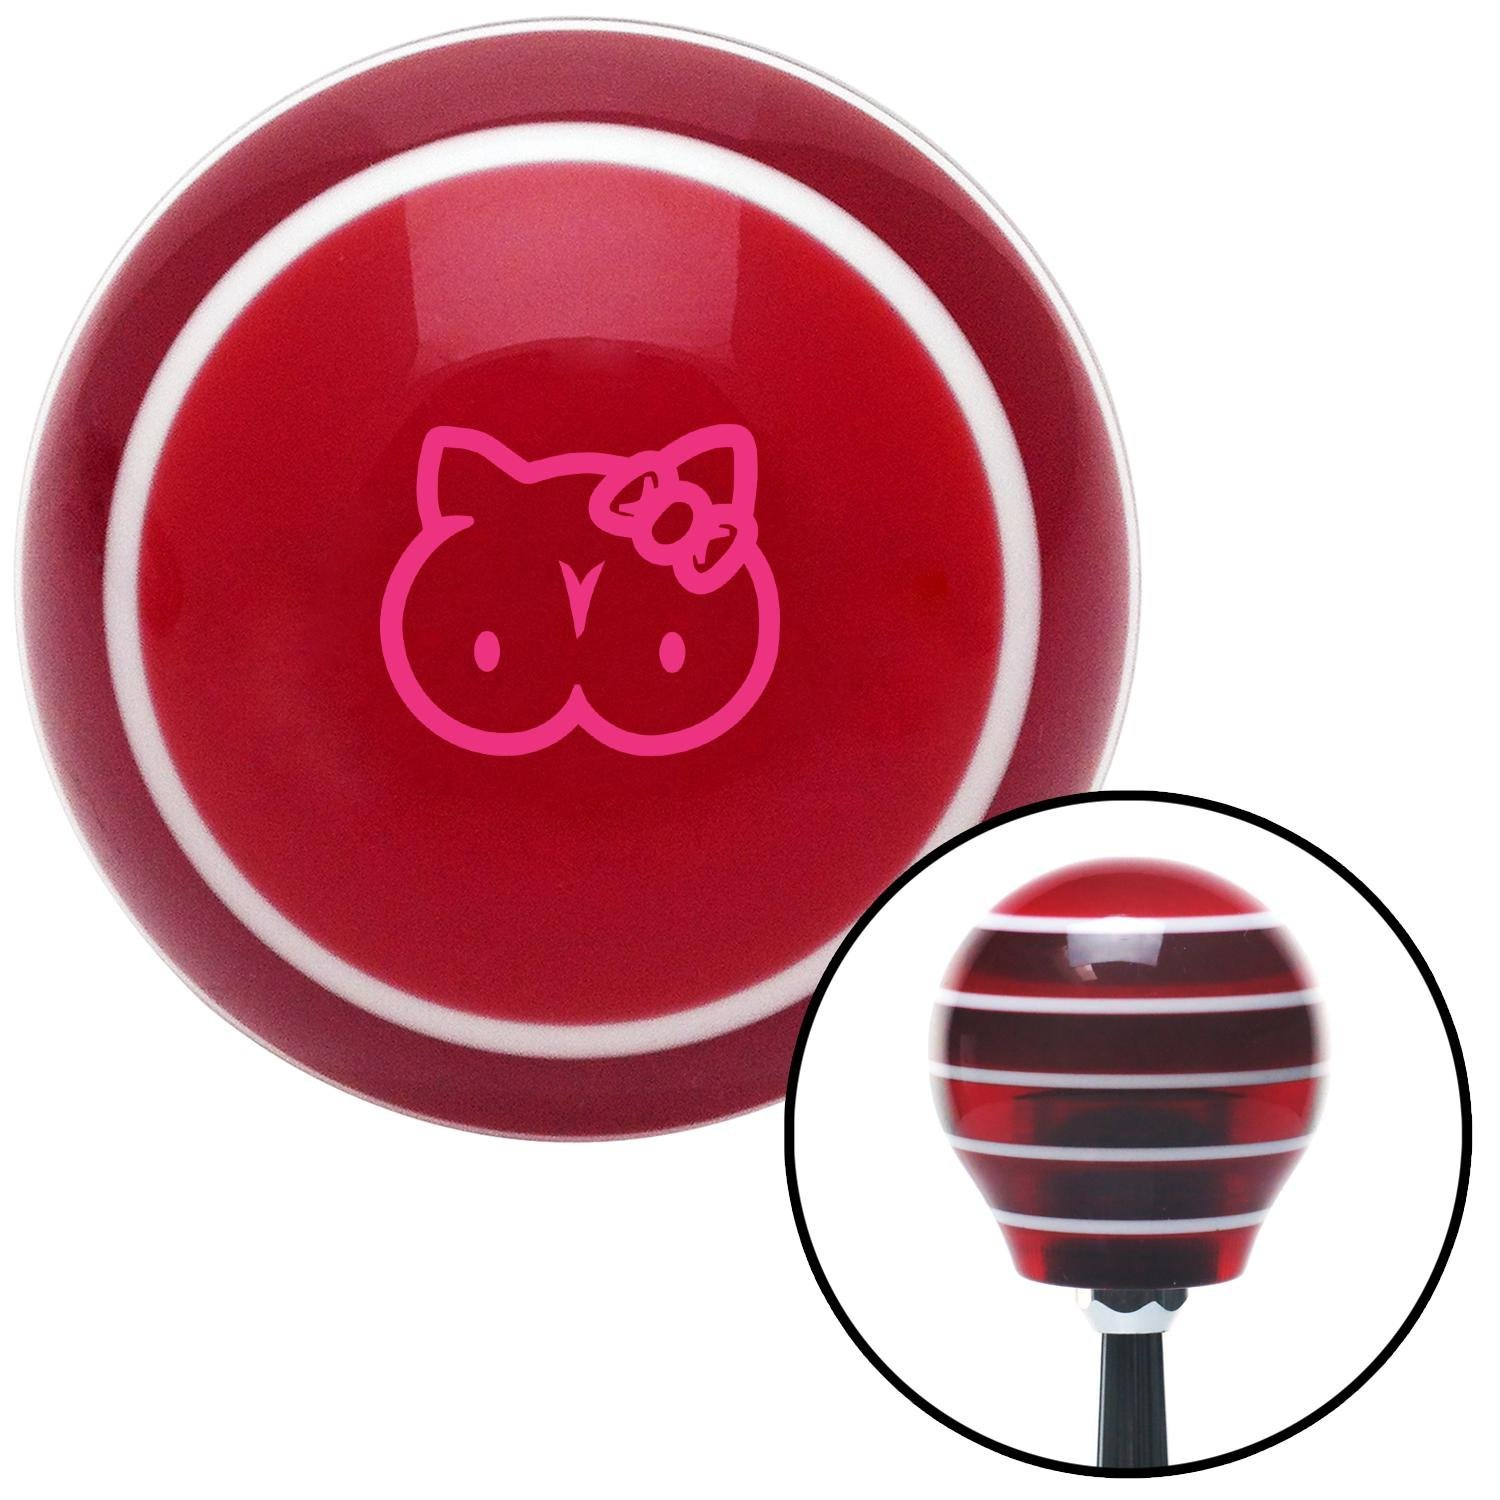 American Shifter 273739 Shift Knob Pink Hello Titty Red Stripe with M16 x 1.5 Insert